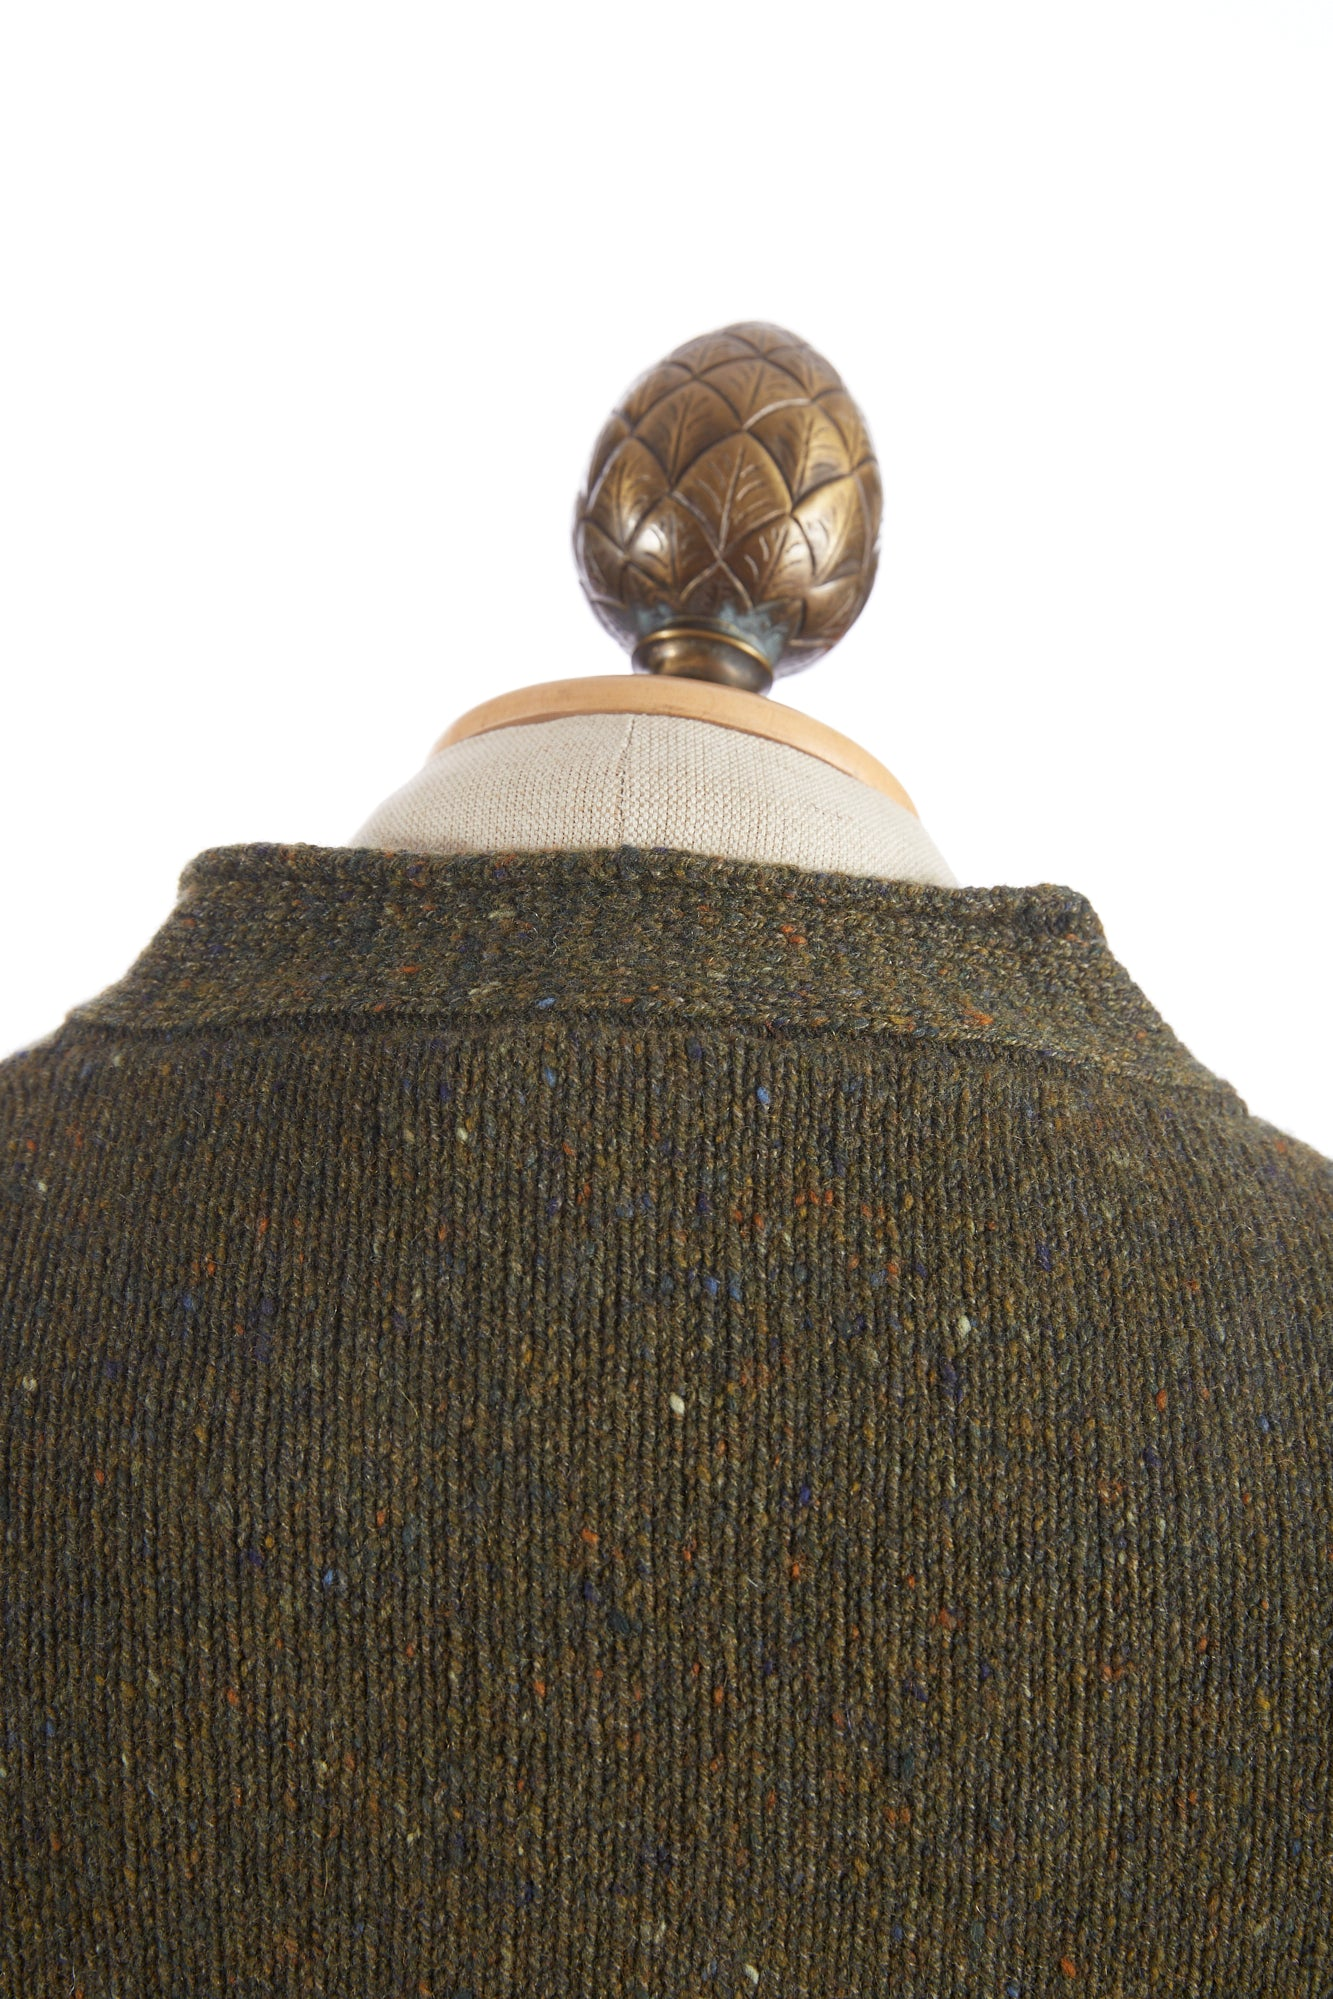 Inis Meáin Loden Green Donegal Plated Hurler Sweater - Sweaters - Inis Meáin - LALONDE's